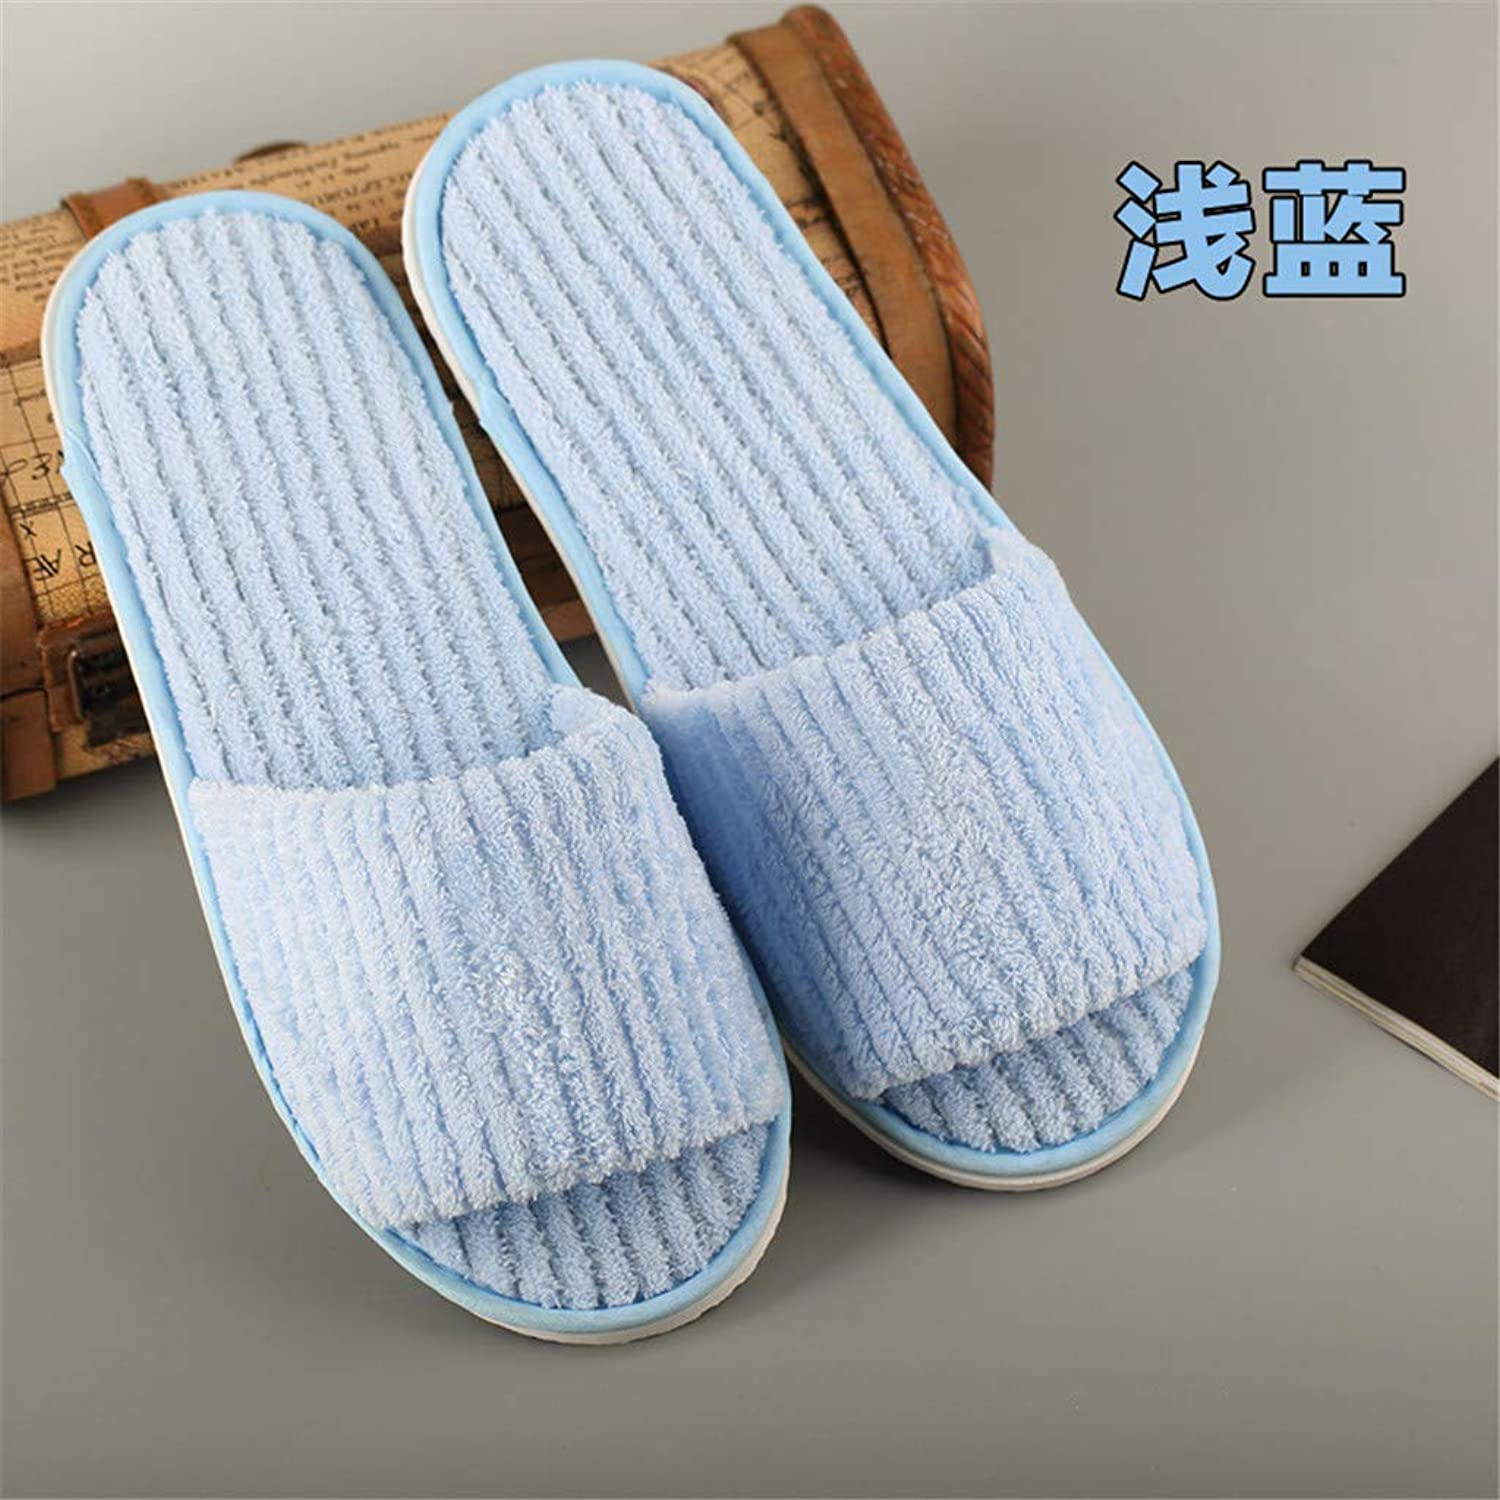 10 Pairs Coral Fleece Open Toe Slippers for Spa, Party Guest, Hotel and Travel, Washable and Non-Disposable, Easily Foldable and Portable,G